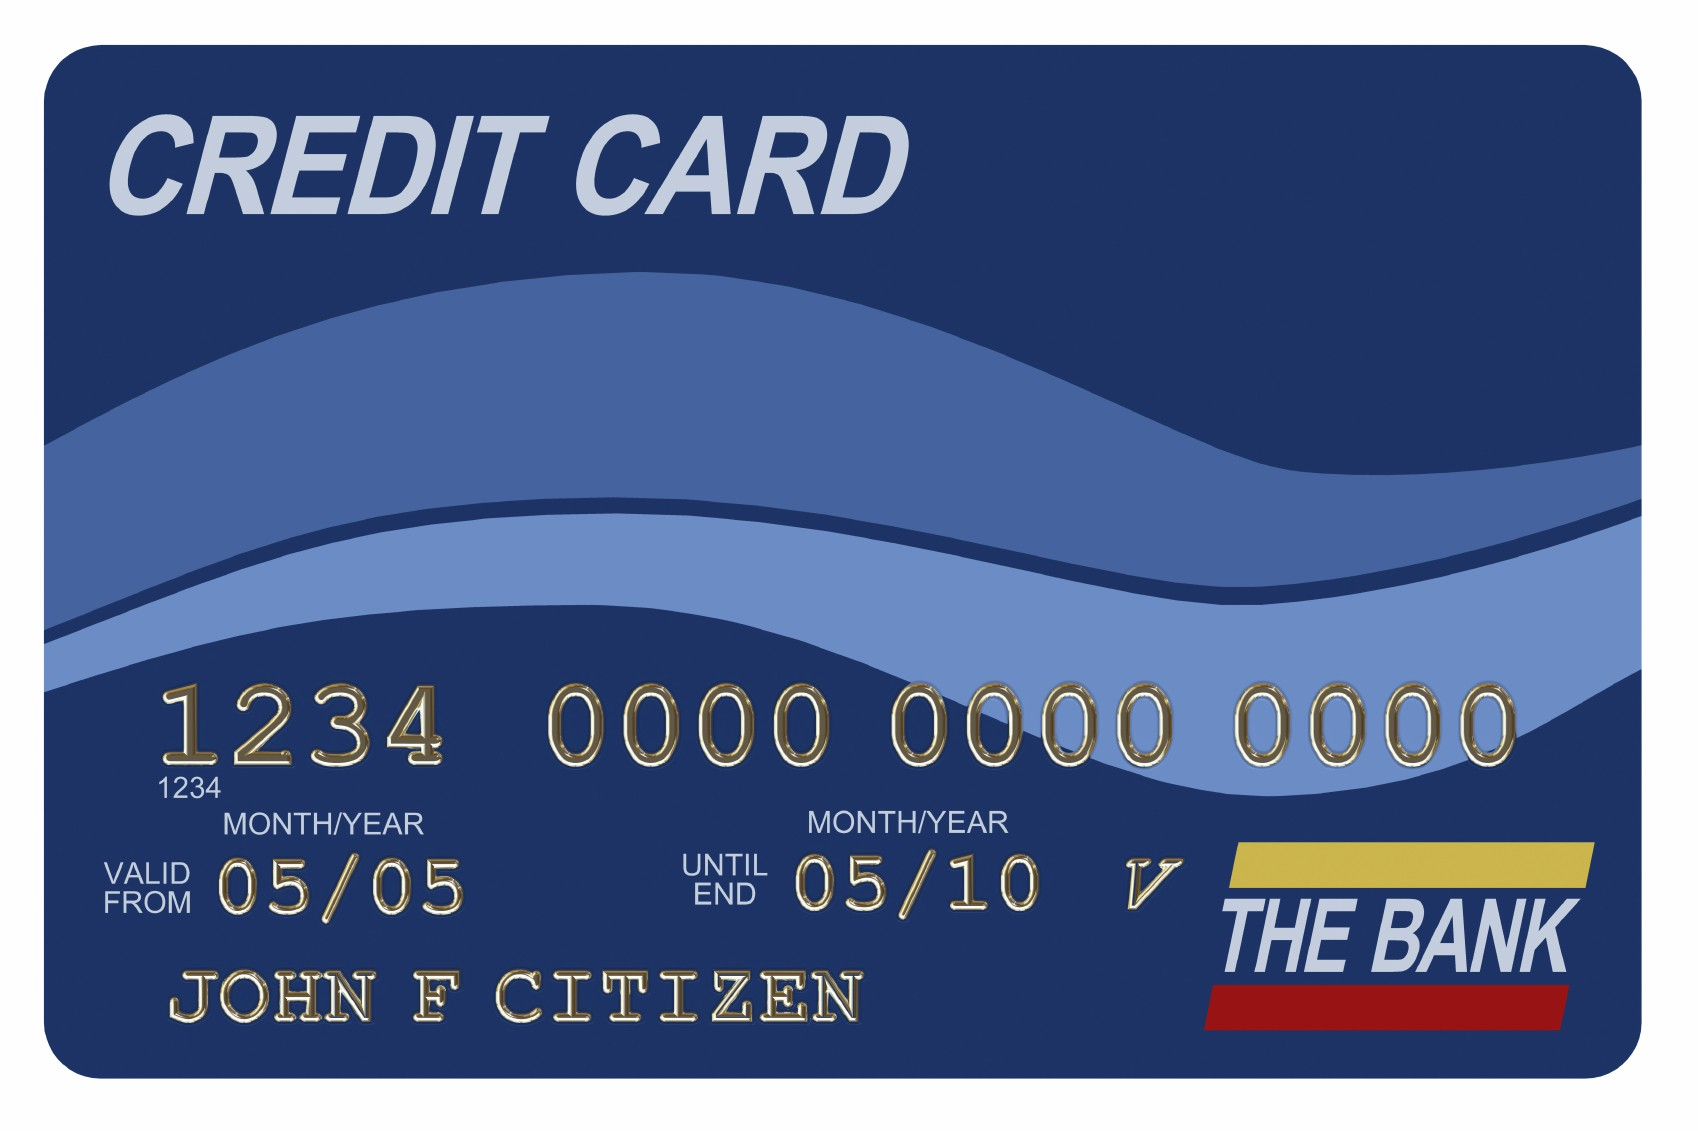 Online credit card approval